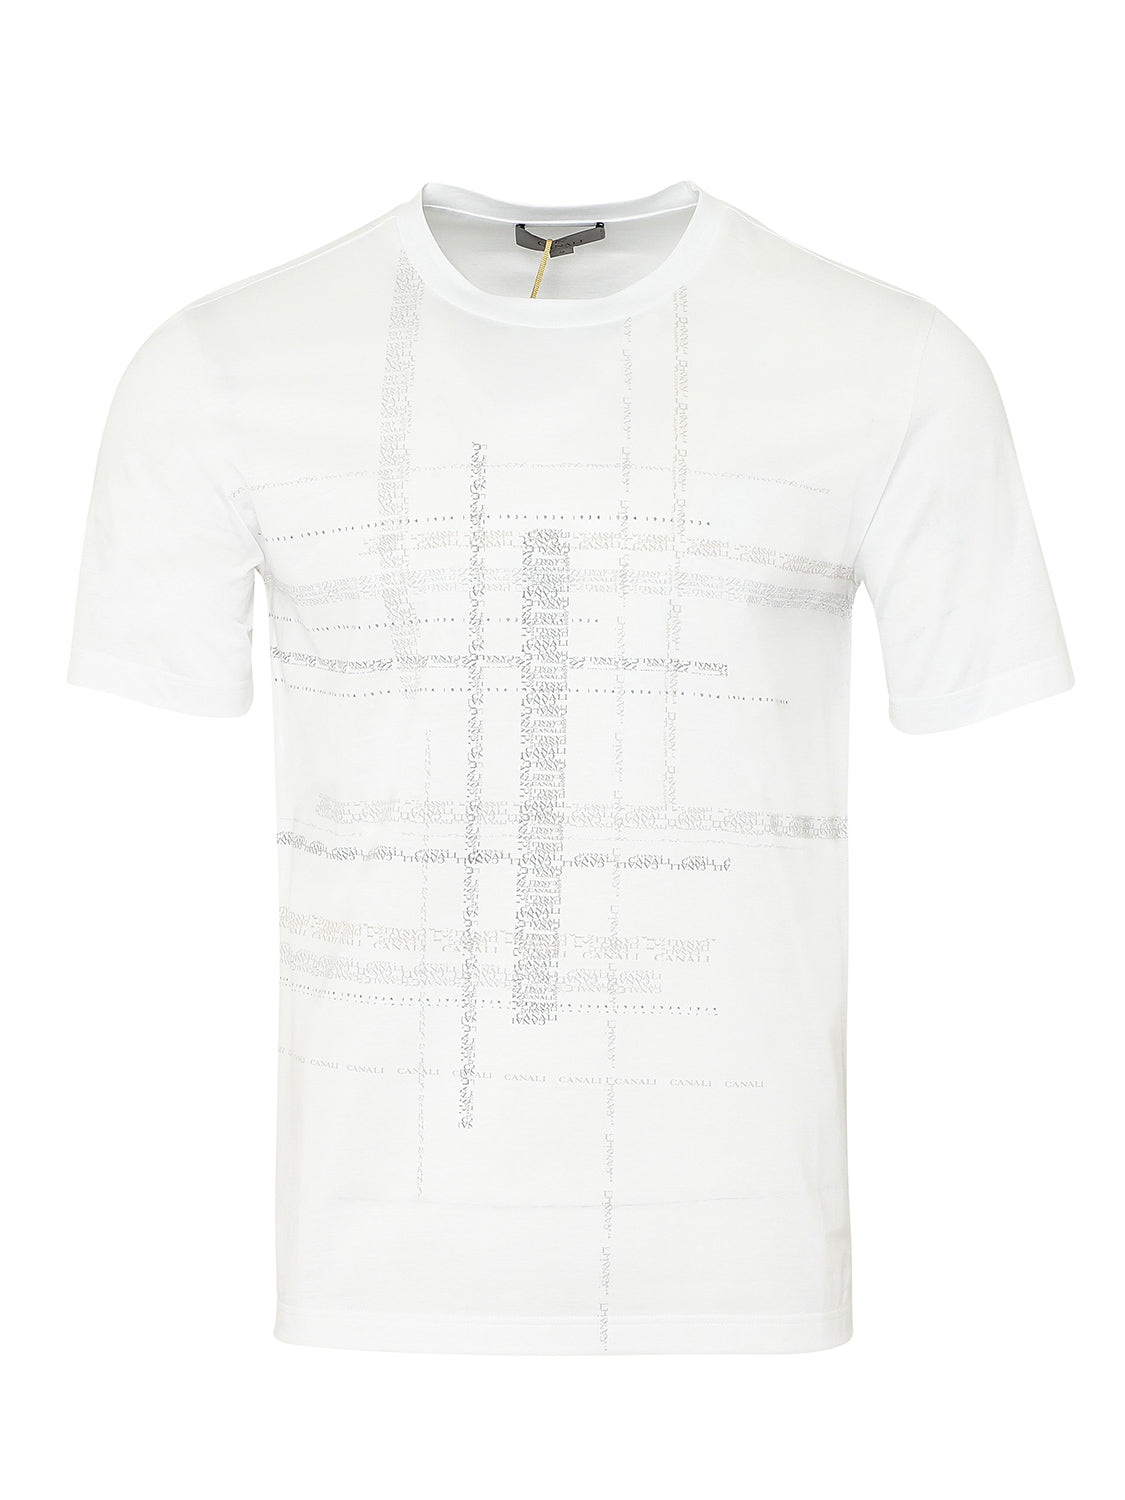 Canali Crew Text Print T-Shirt (White) - Union 22